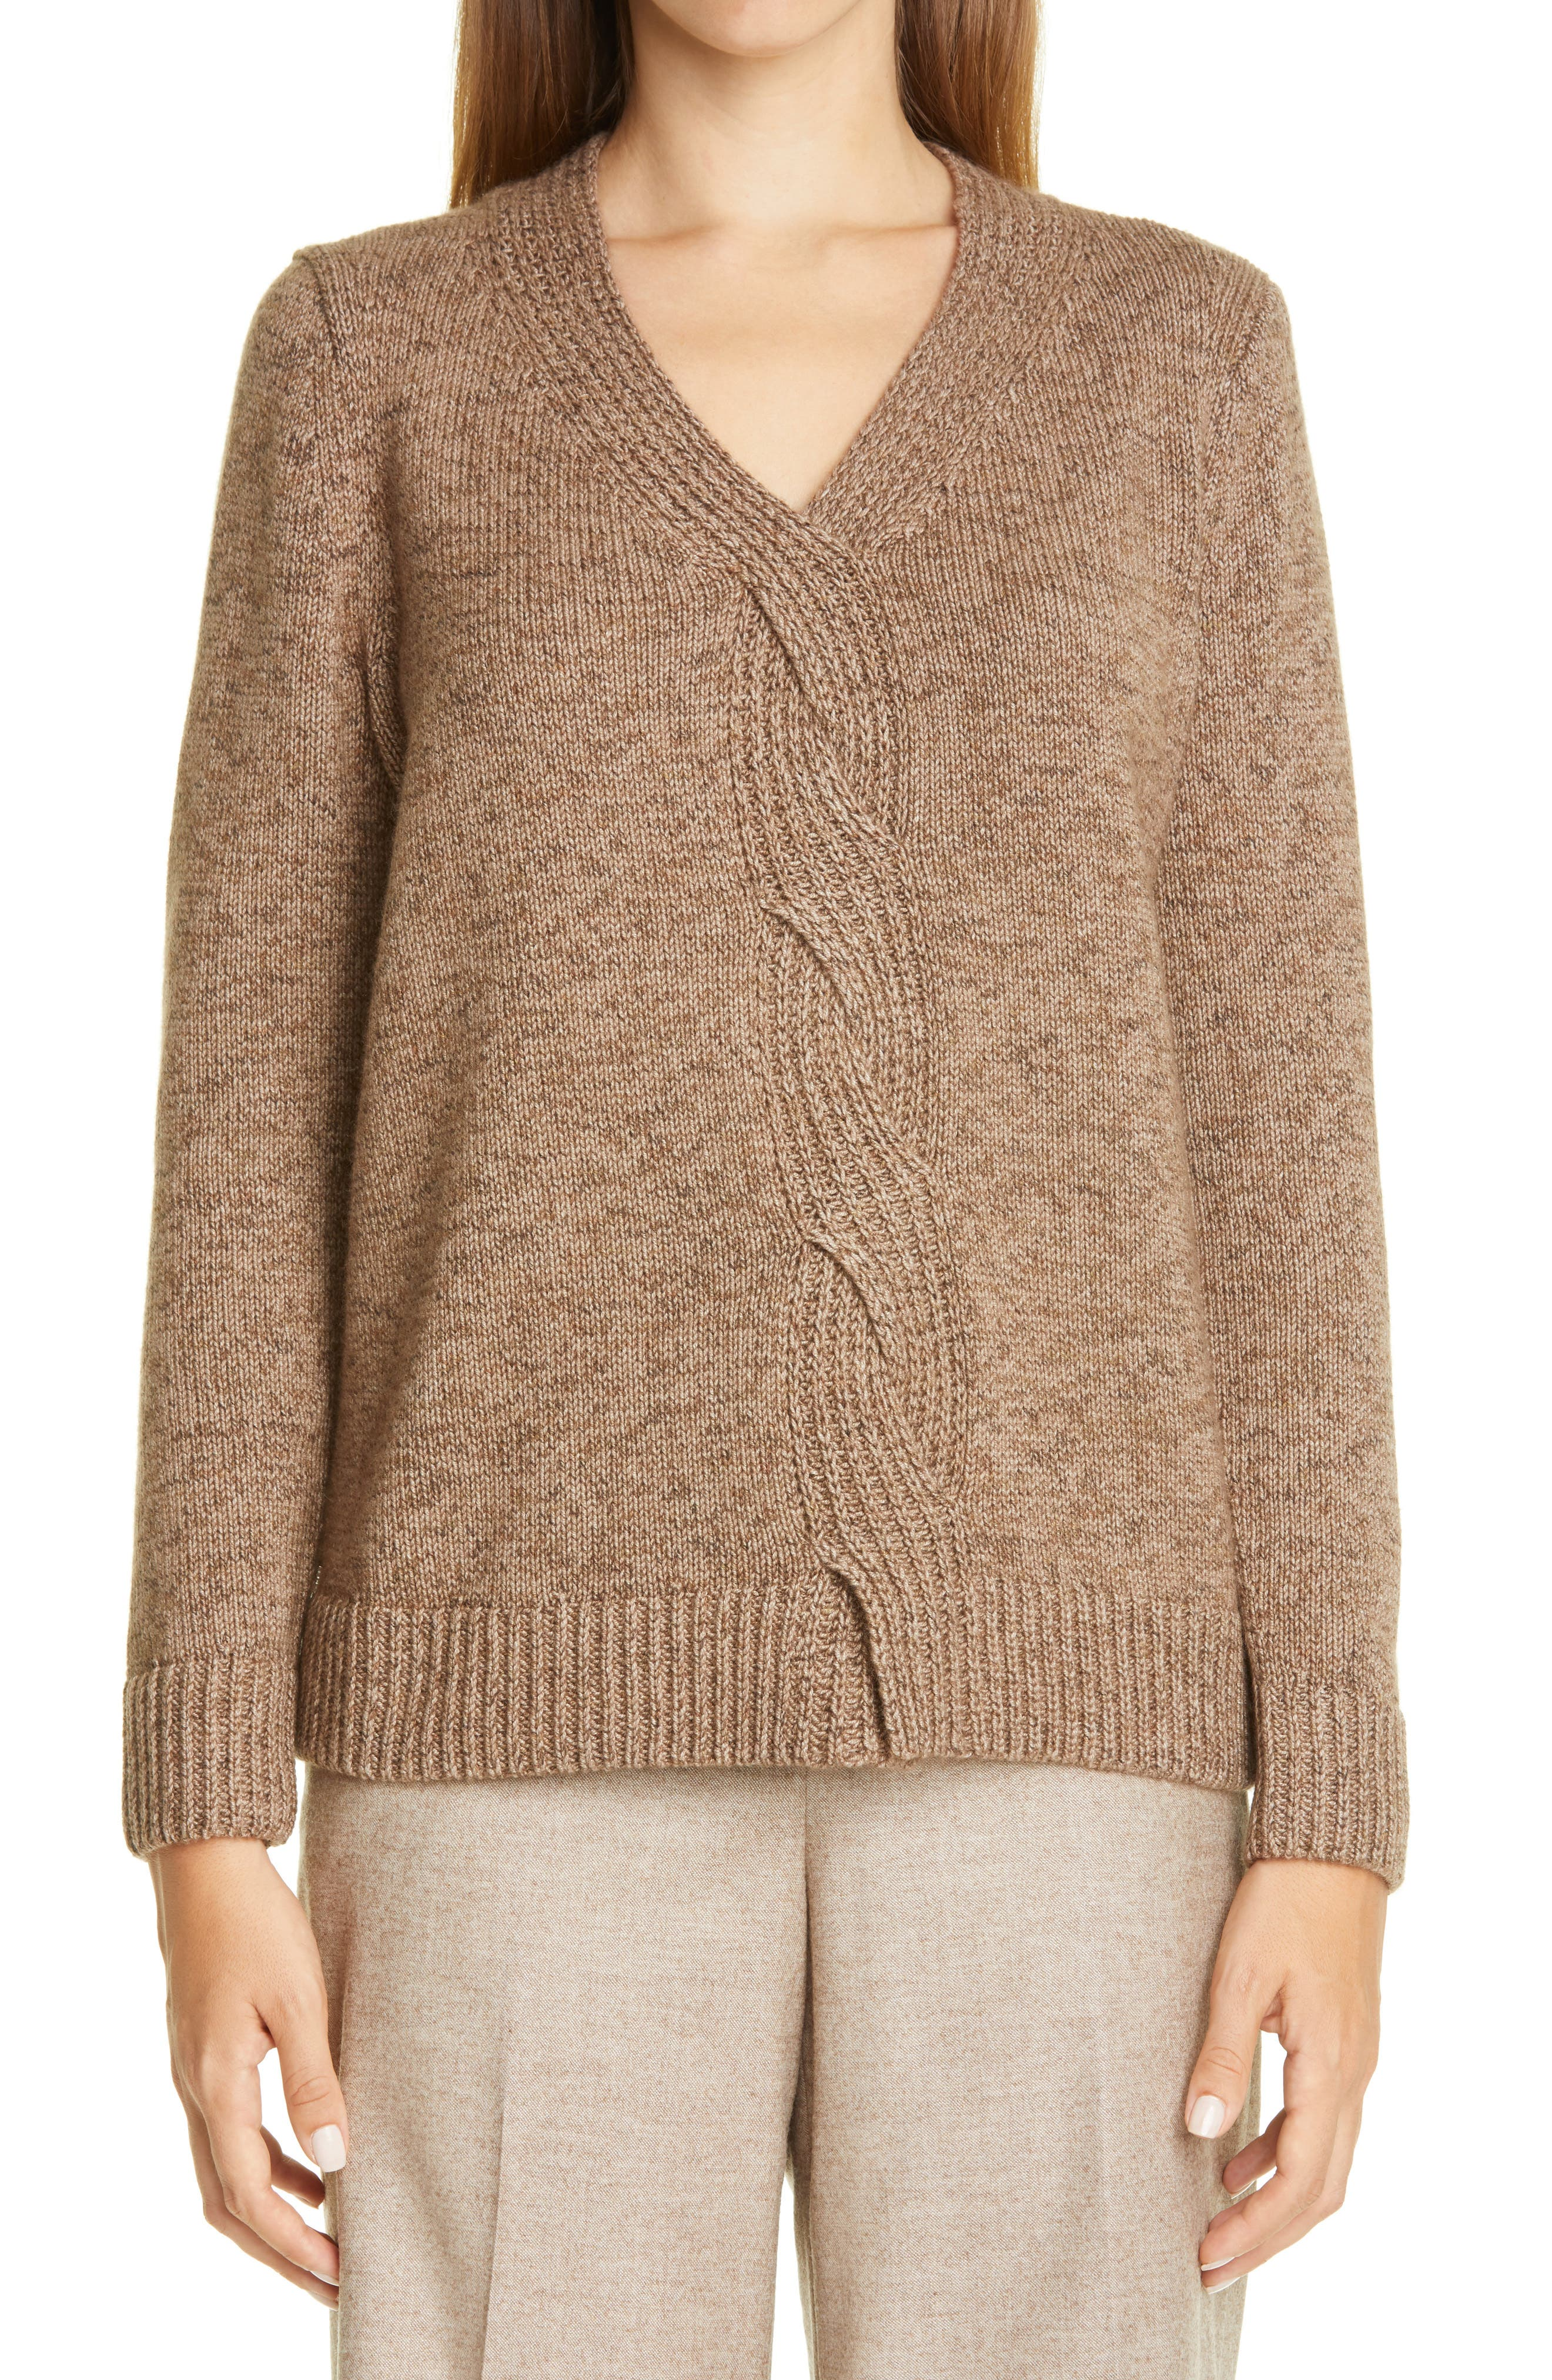 Image of Lafayette 148 New York Braided Cable Cashmere & Silk Sweater